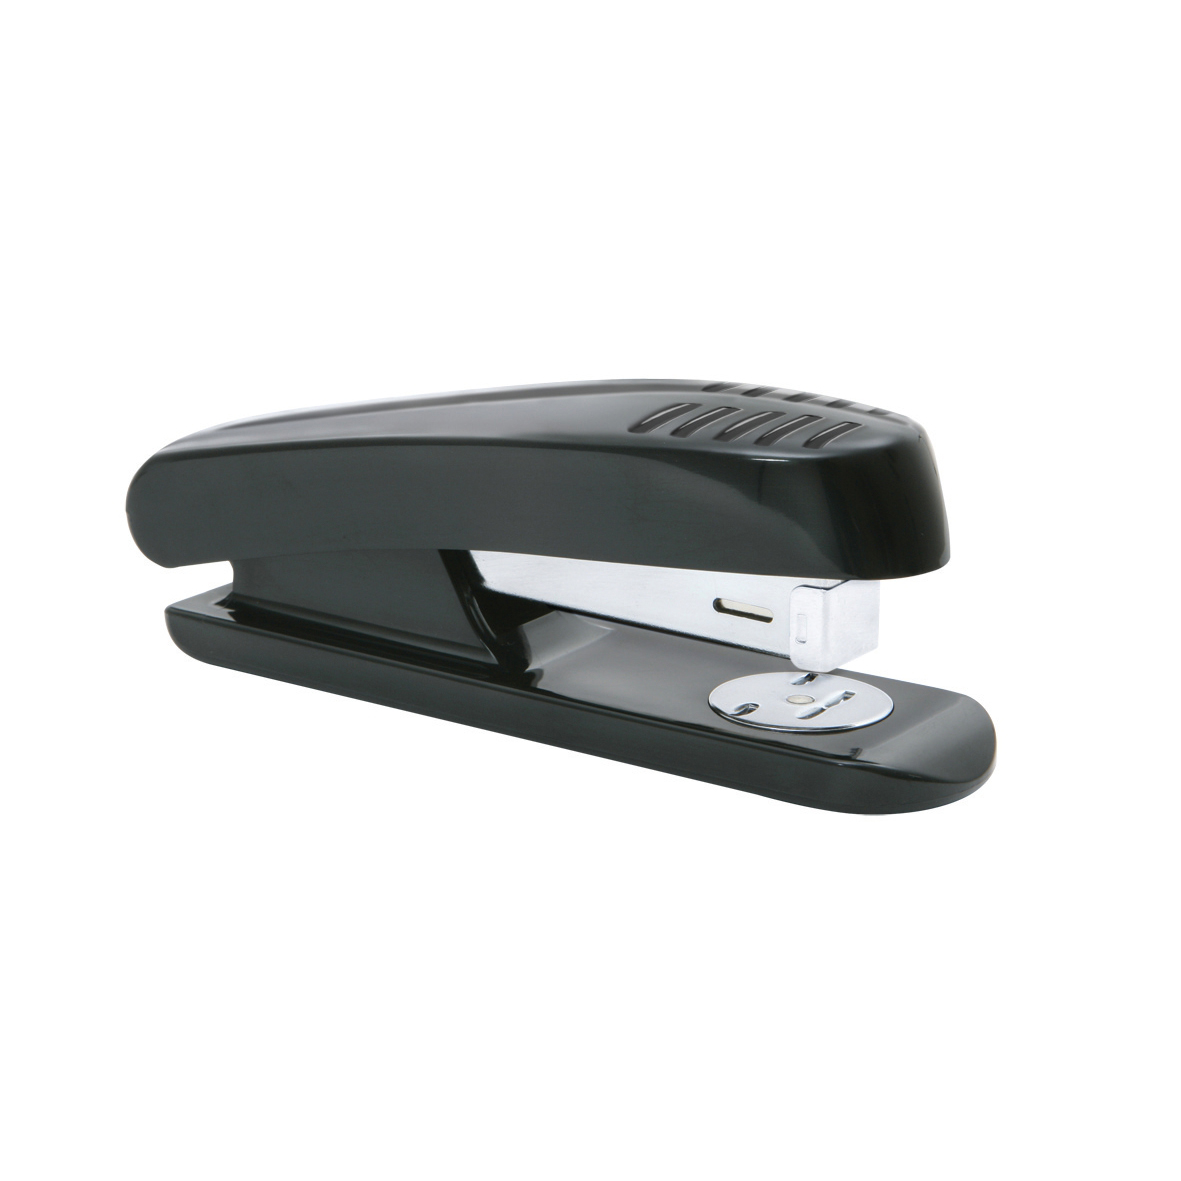 Long Arm Staplers 5 Star Office Stapler Half Strip Plastic Capacity 20 Sheets Black